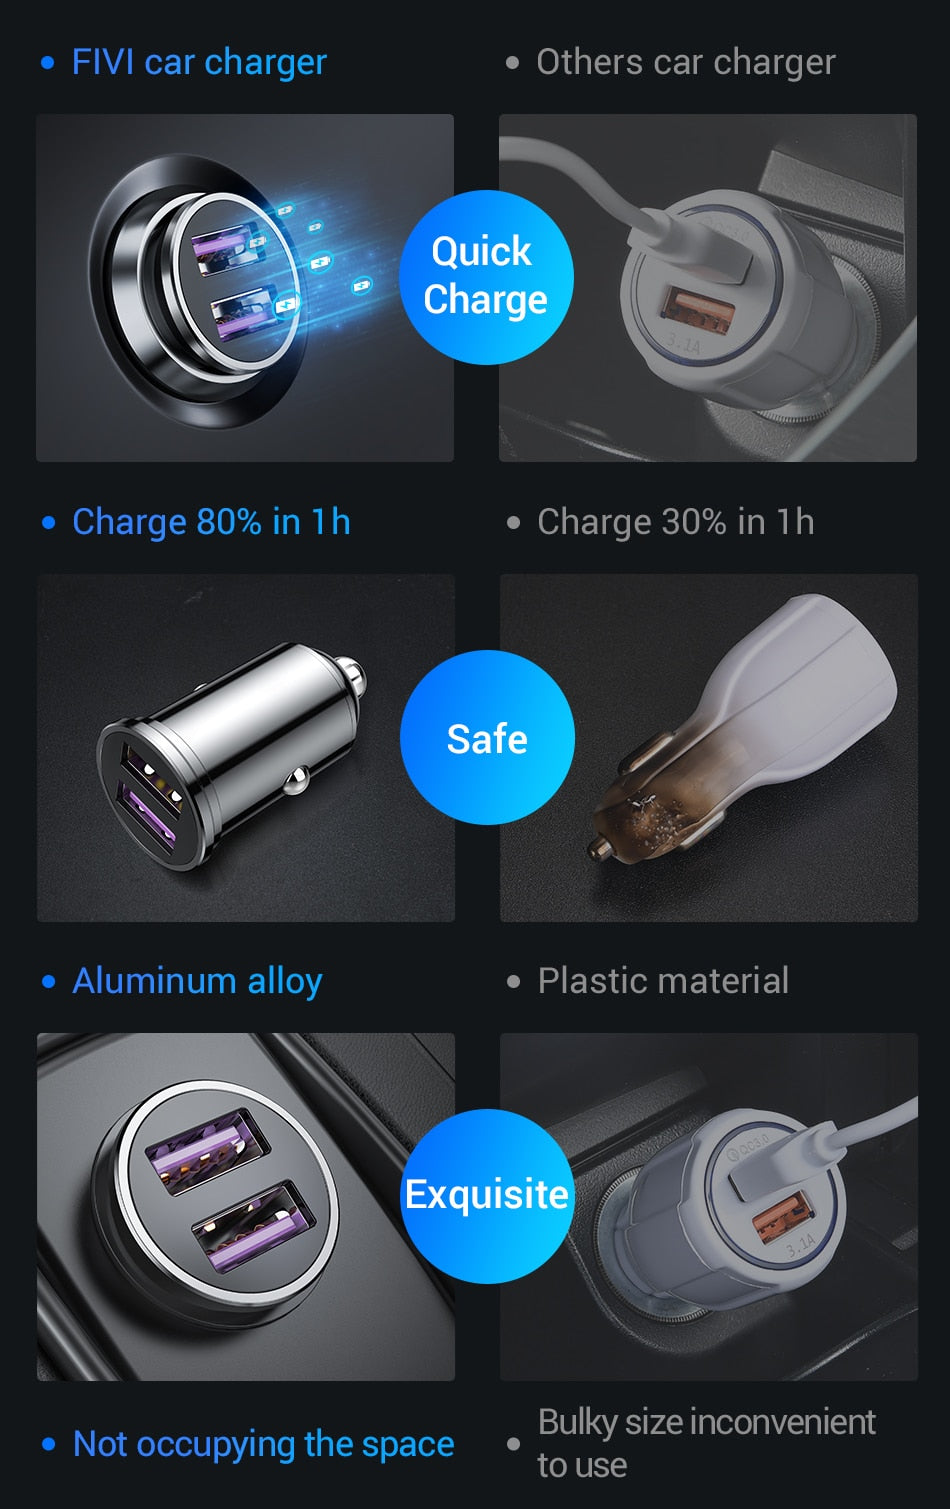 Mobile Phone Car Charger | Dual 3.0 Qualcomm Fast Charge | 18 Watt Ultra Fast